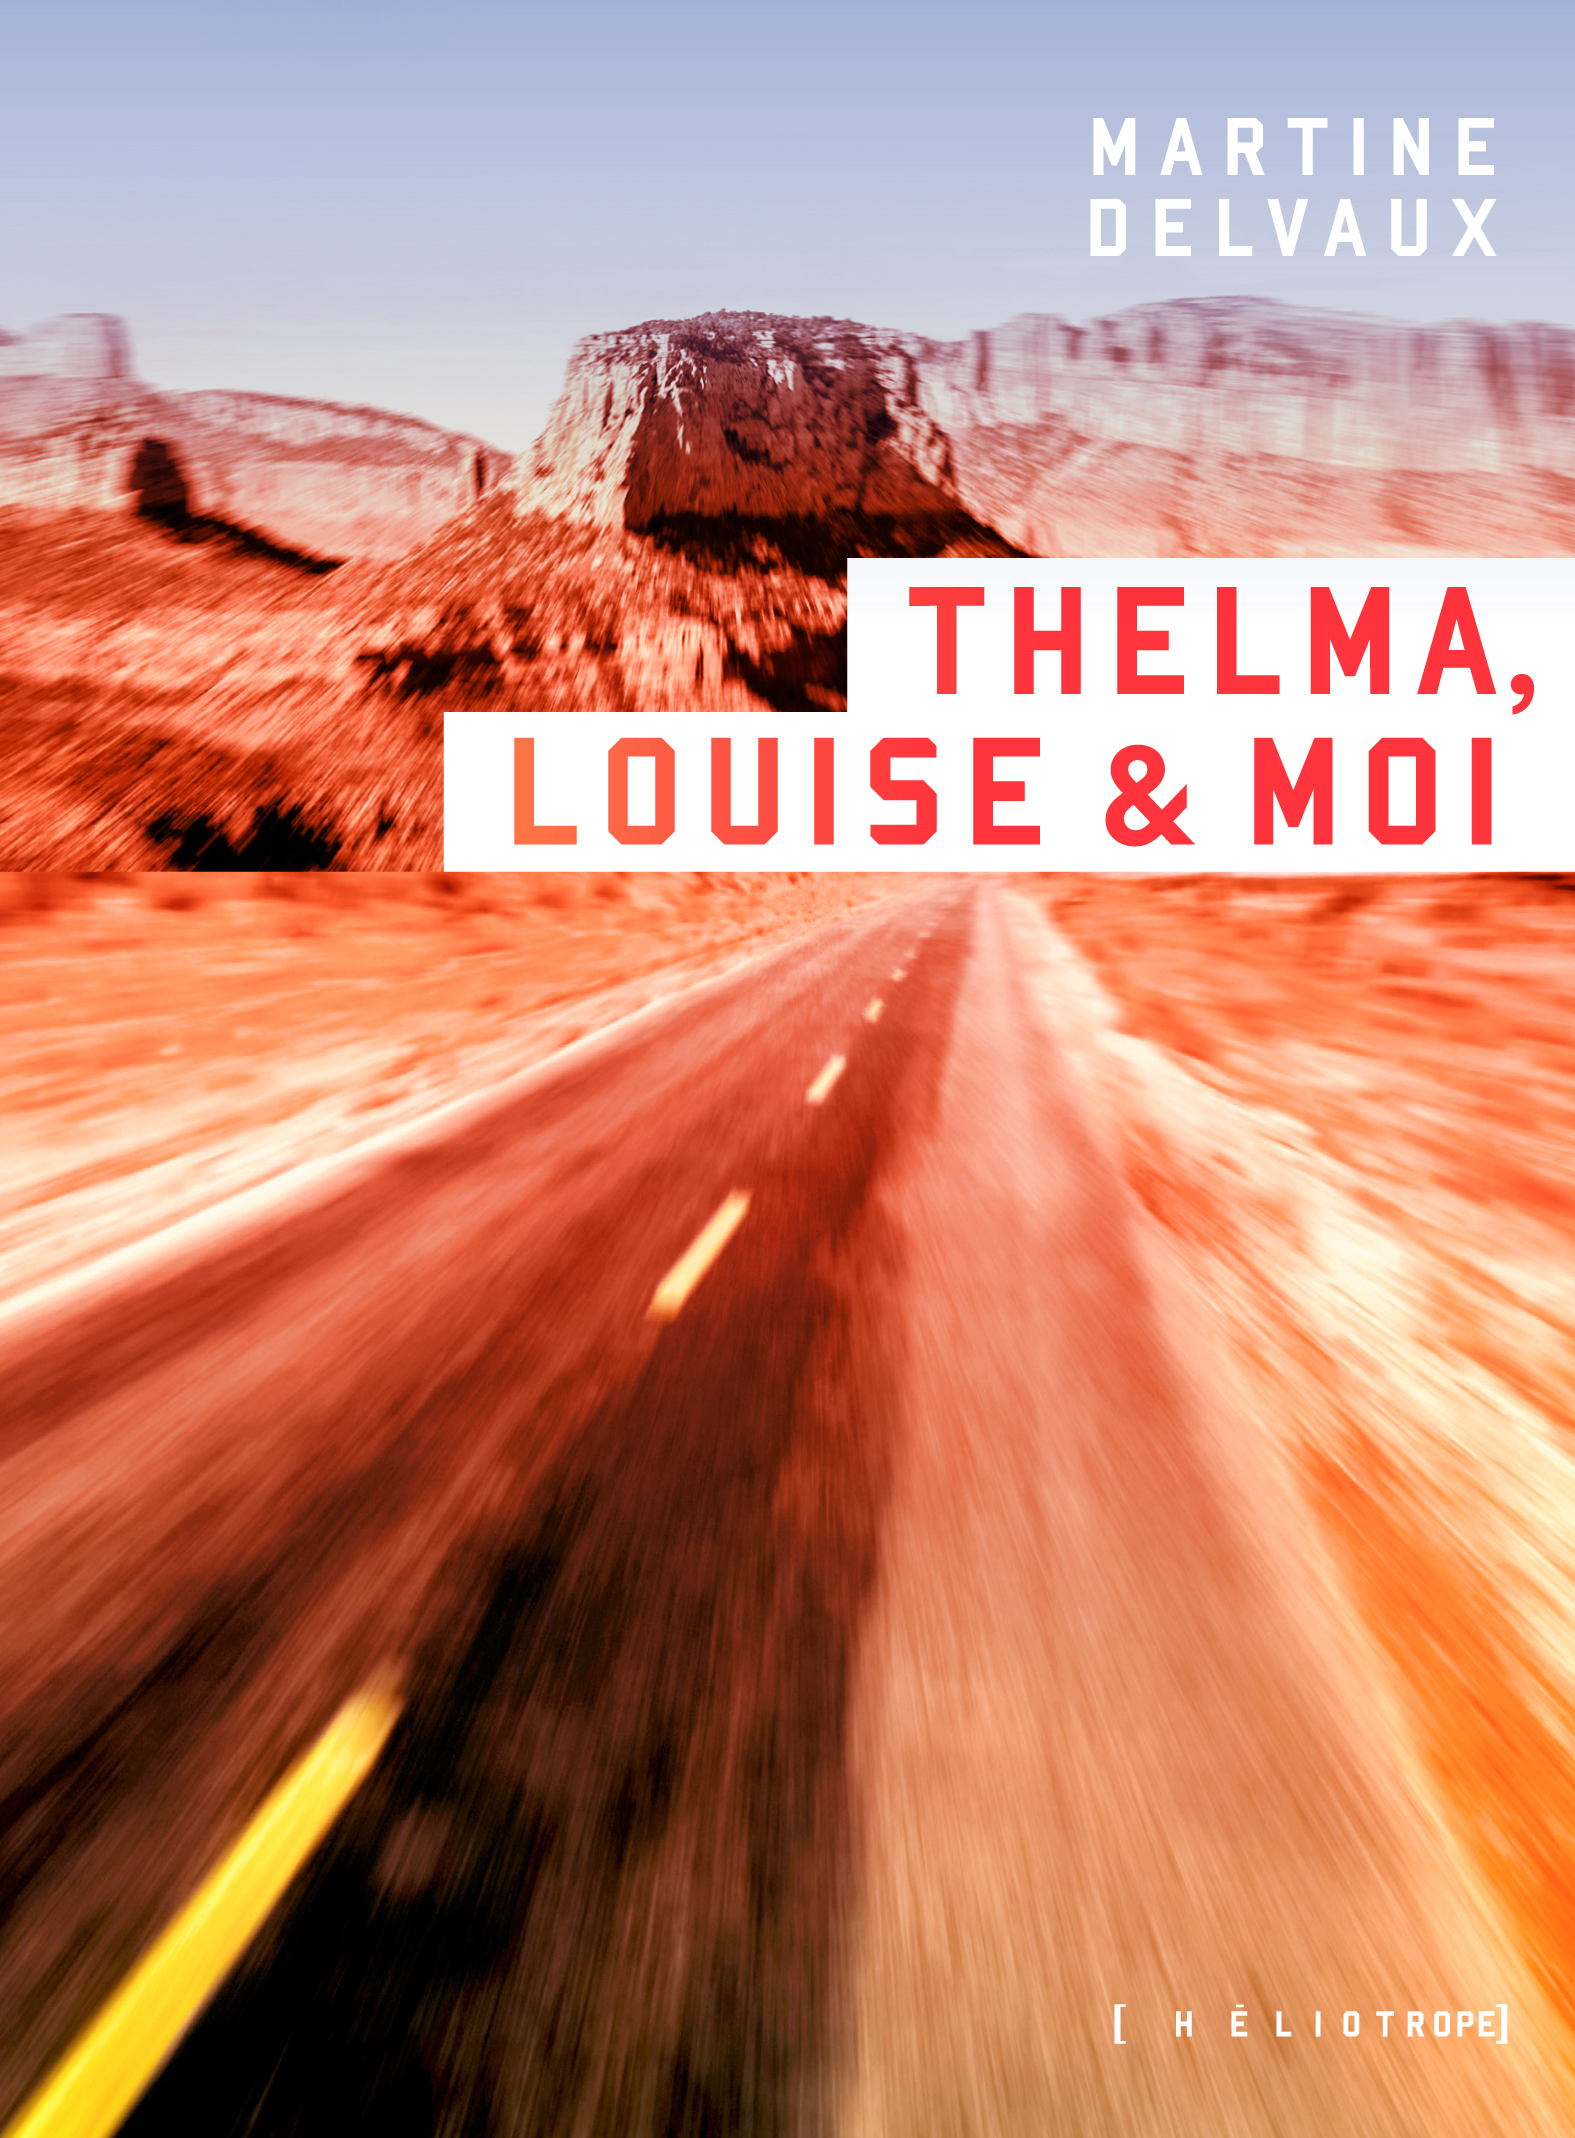 Thelma, Louise & moi - Martine Delvaux